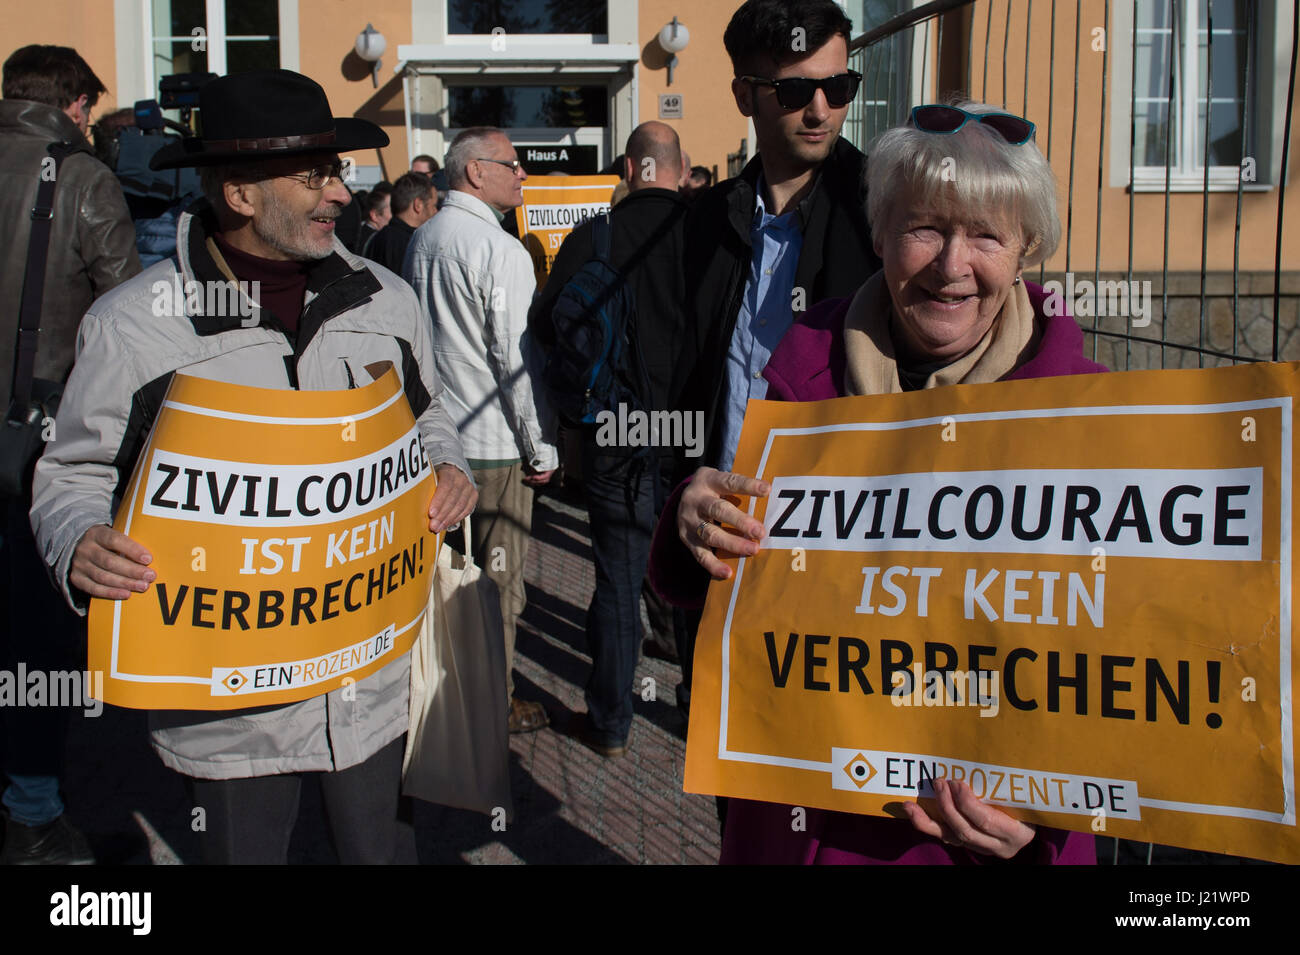 Kamenz, Germany. 24th Apr, 2017. Demonstrators hold up signs reading 'Civic courage is not a crime' in front - Stock Image